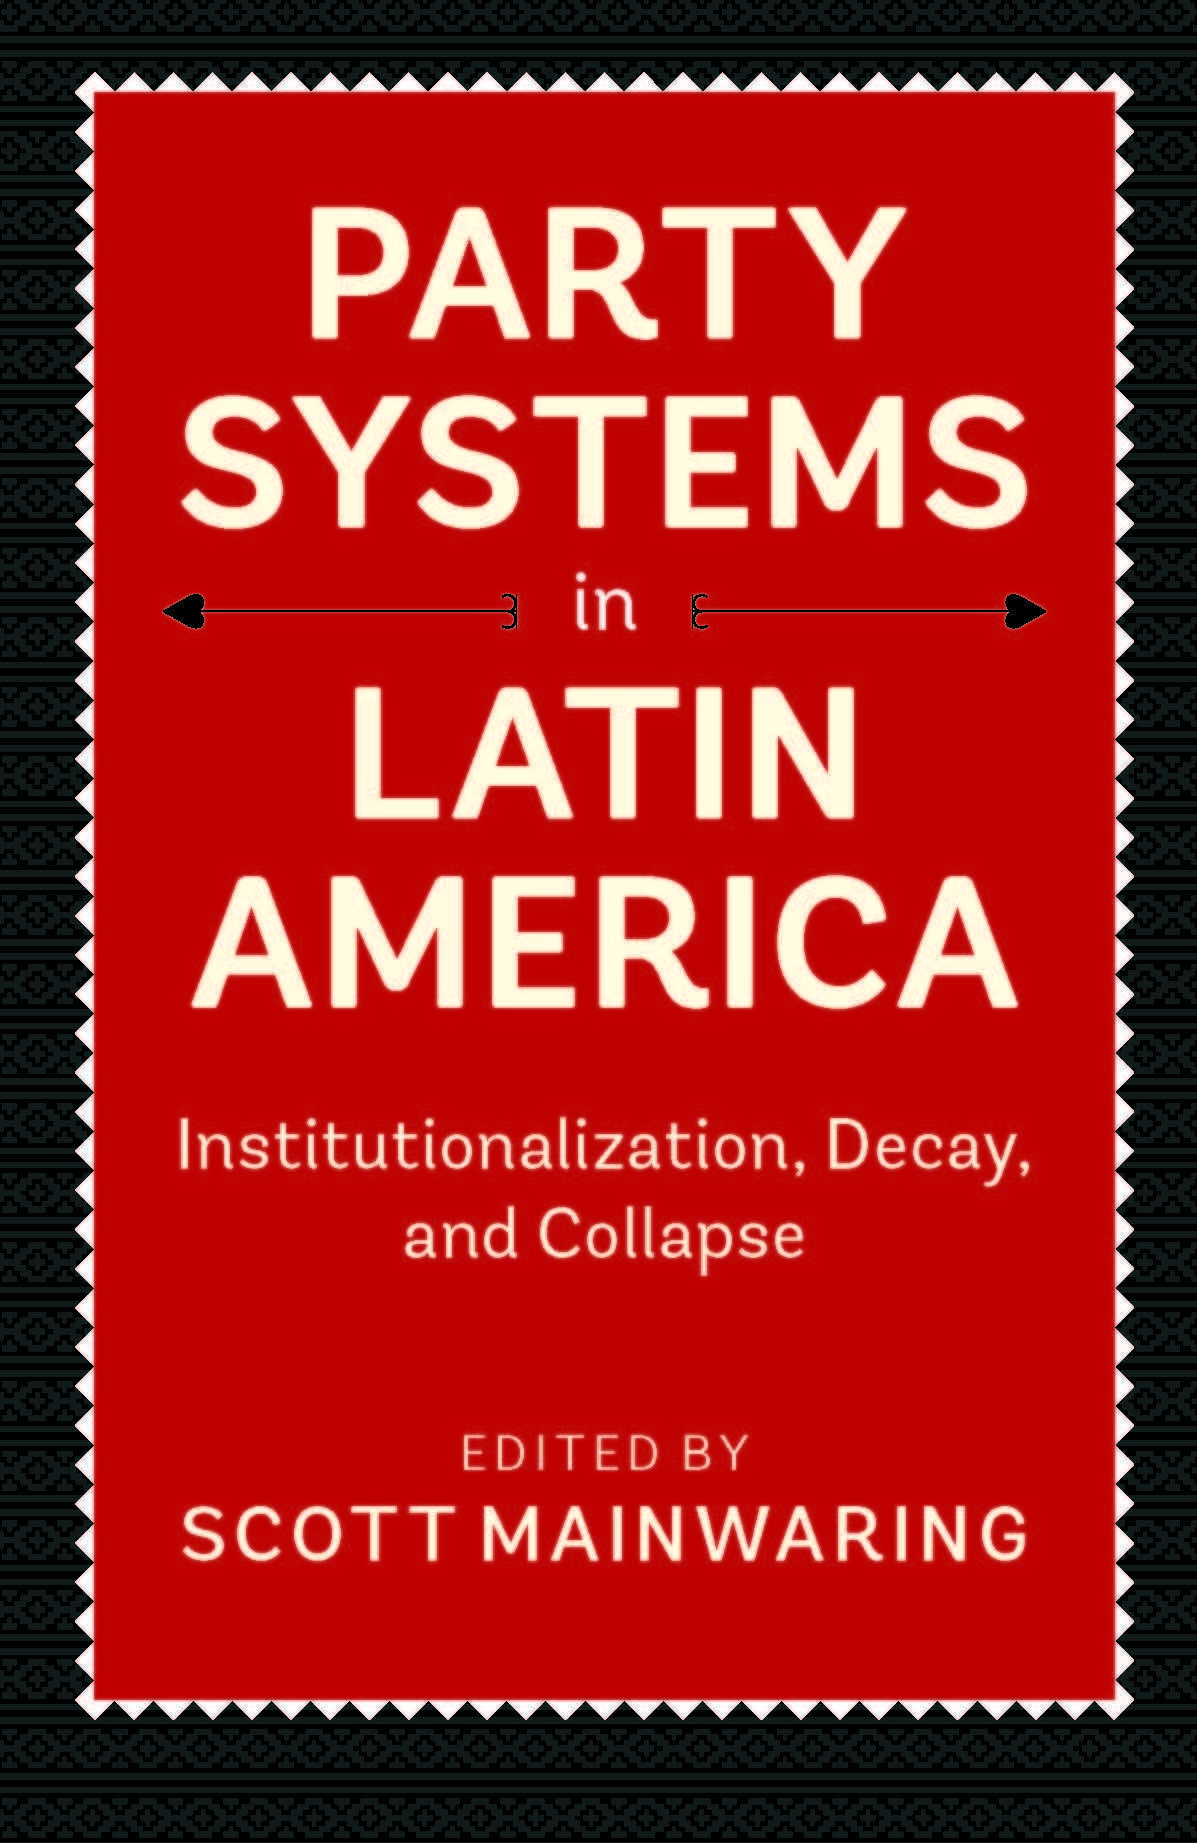 party_systems_in_latin_america